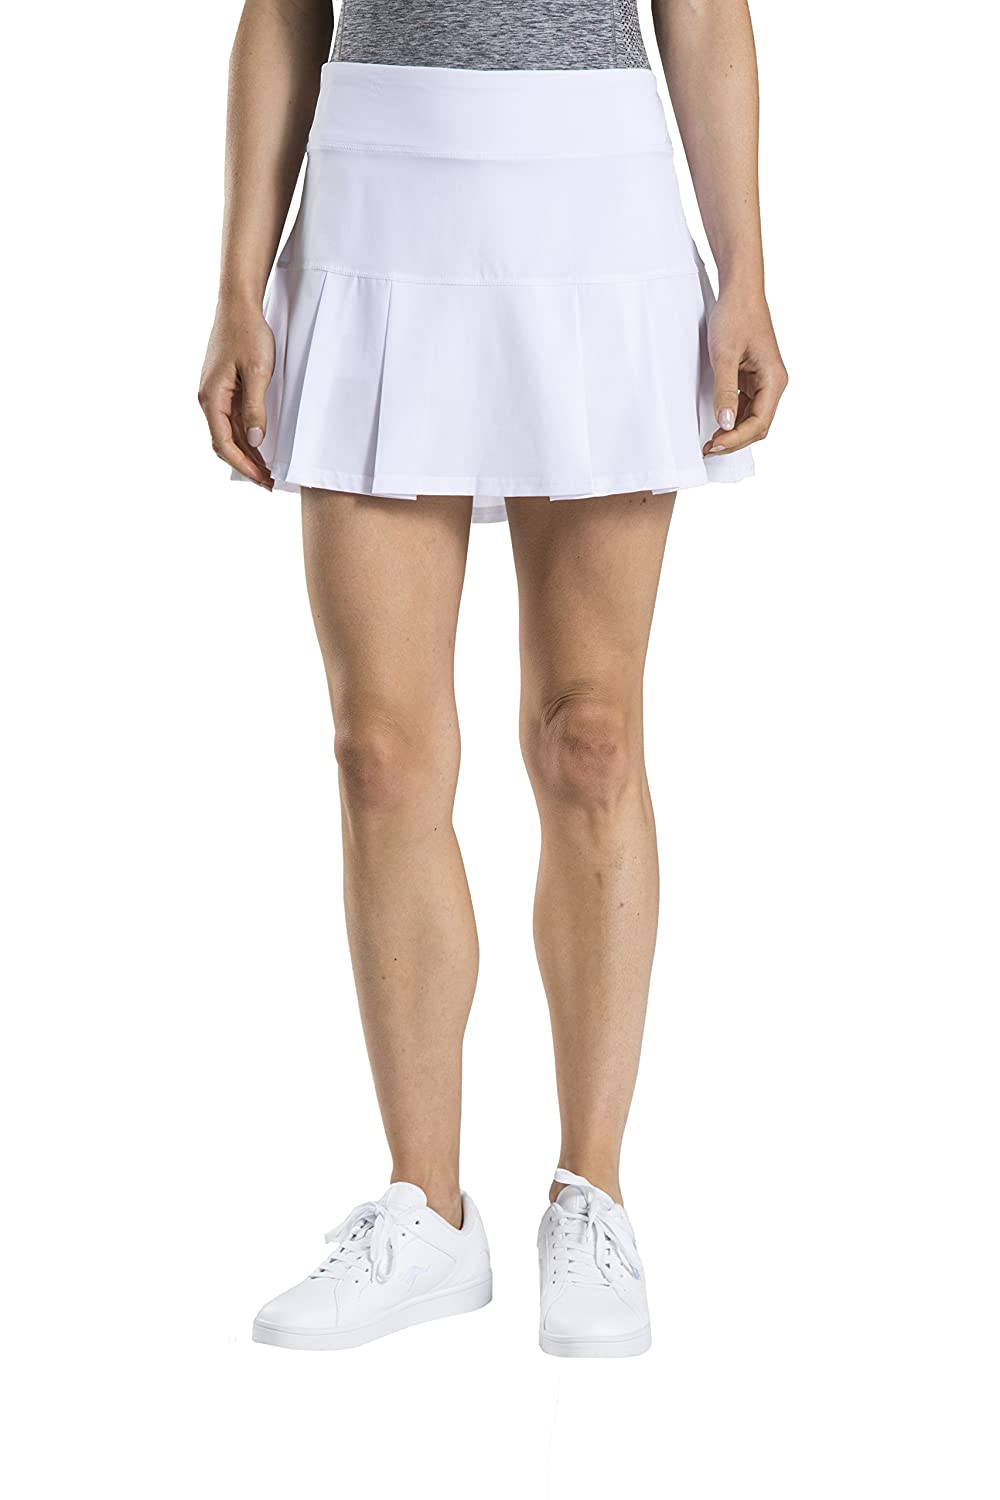 Prince Women's Stretch Woven Pleated Tennis Skort SK6914